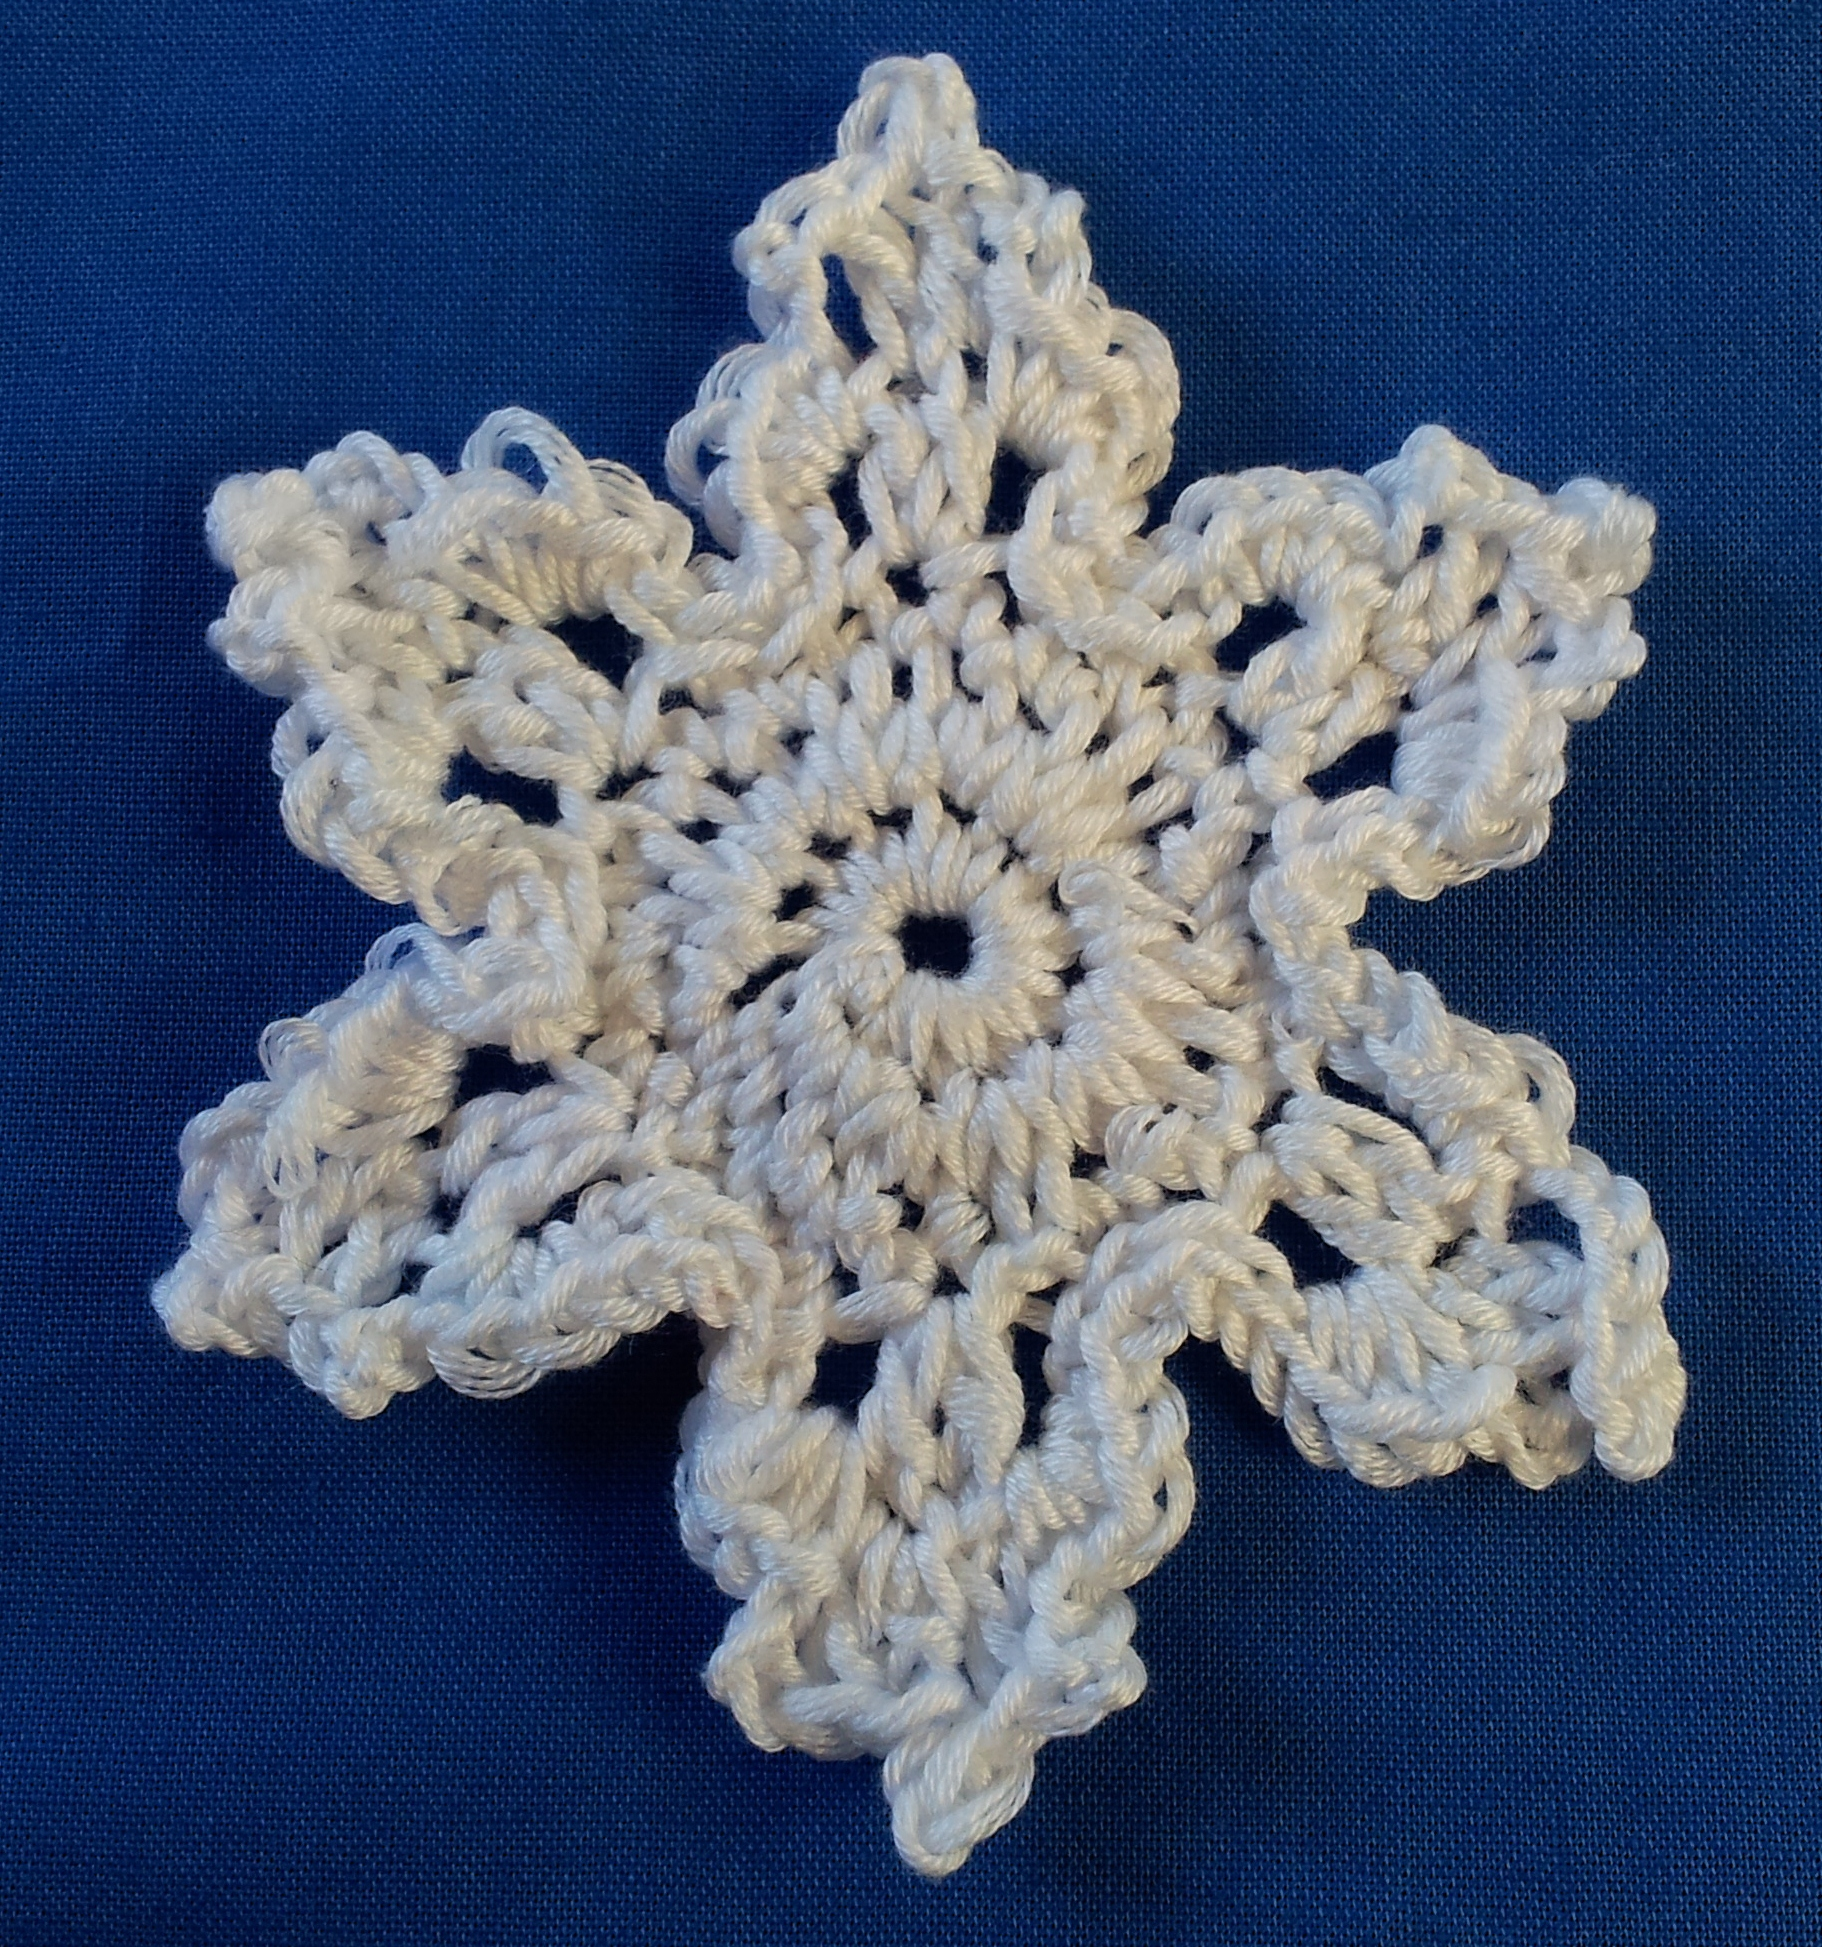 Crochet Snowflake Patterns Free Easy : Quick and Easy Crochet Snowflake Patterns ? tried and ...